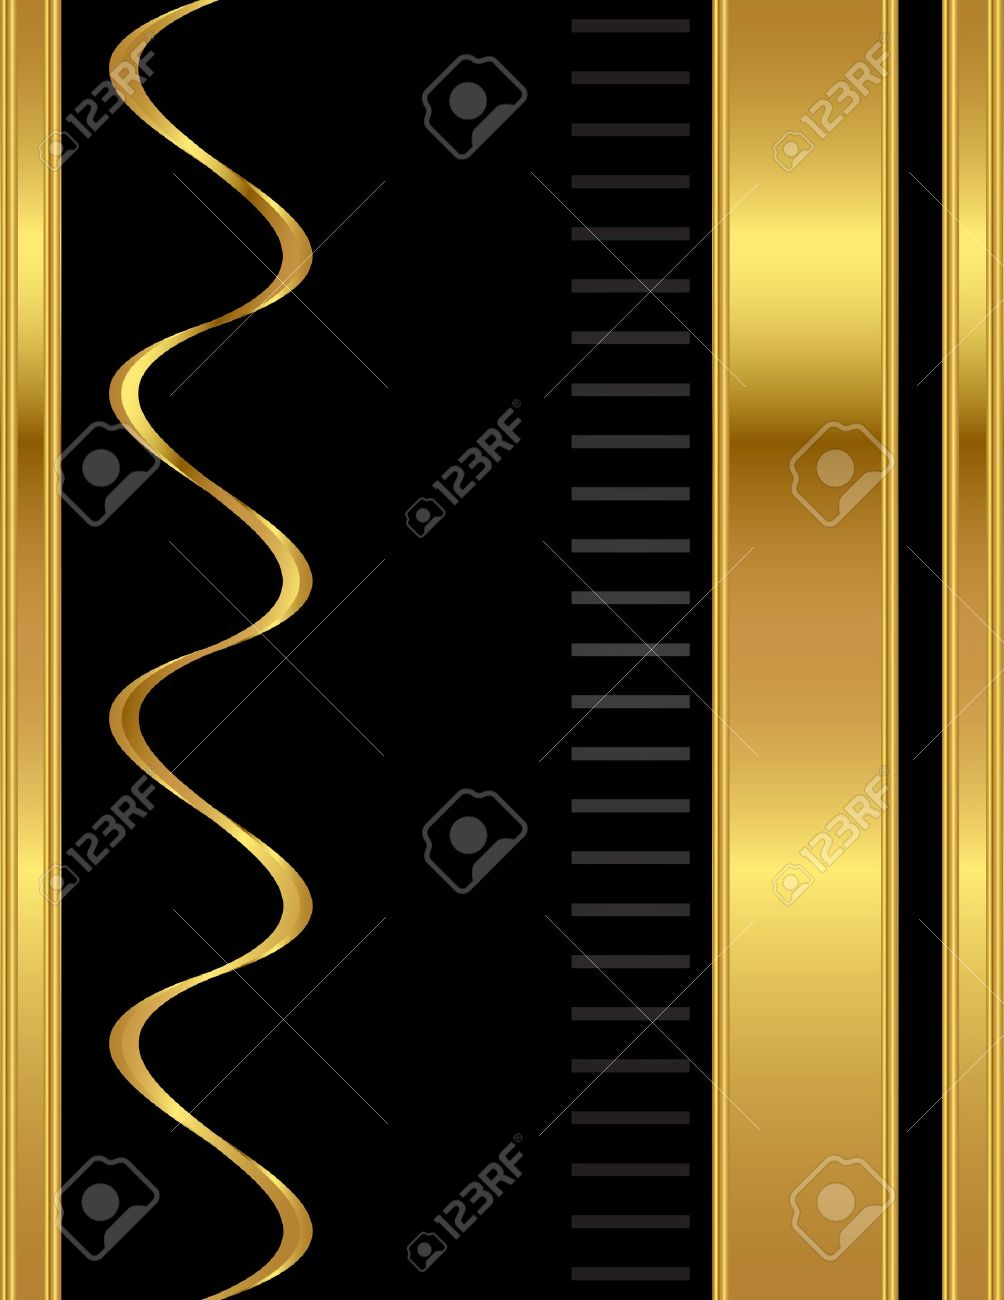 A gold and black, simple and clean, elegant and professional style A4 stationary background template vector. - 11196872